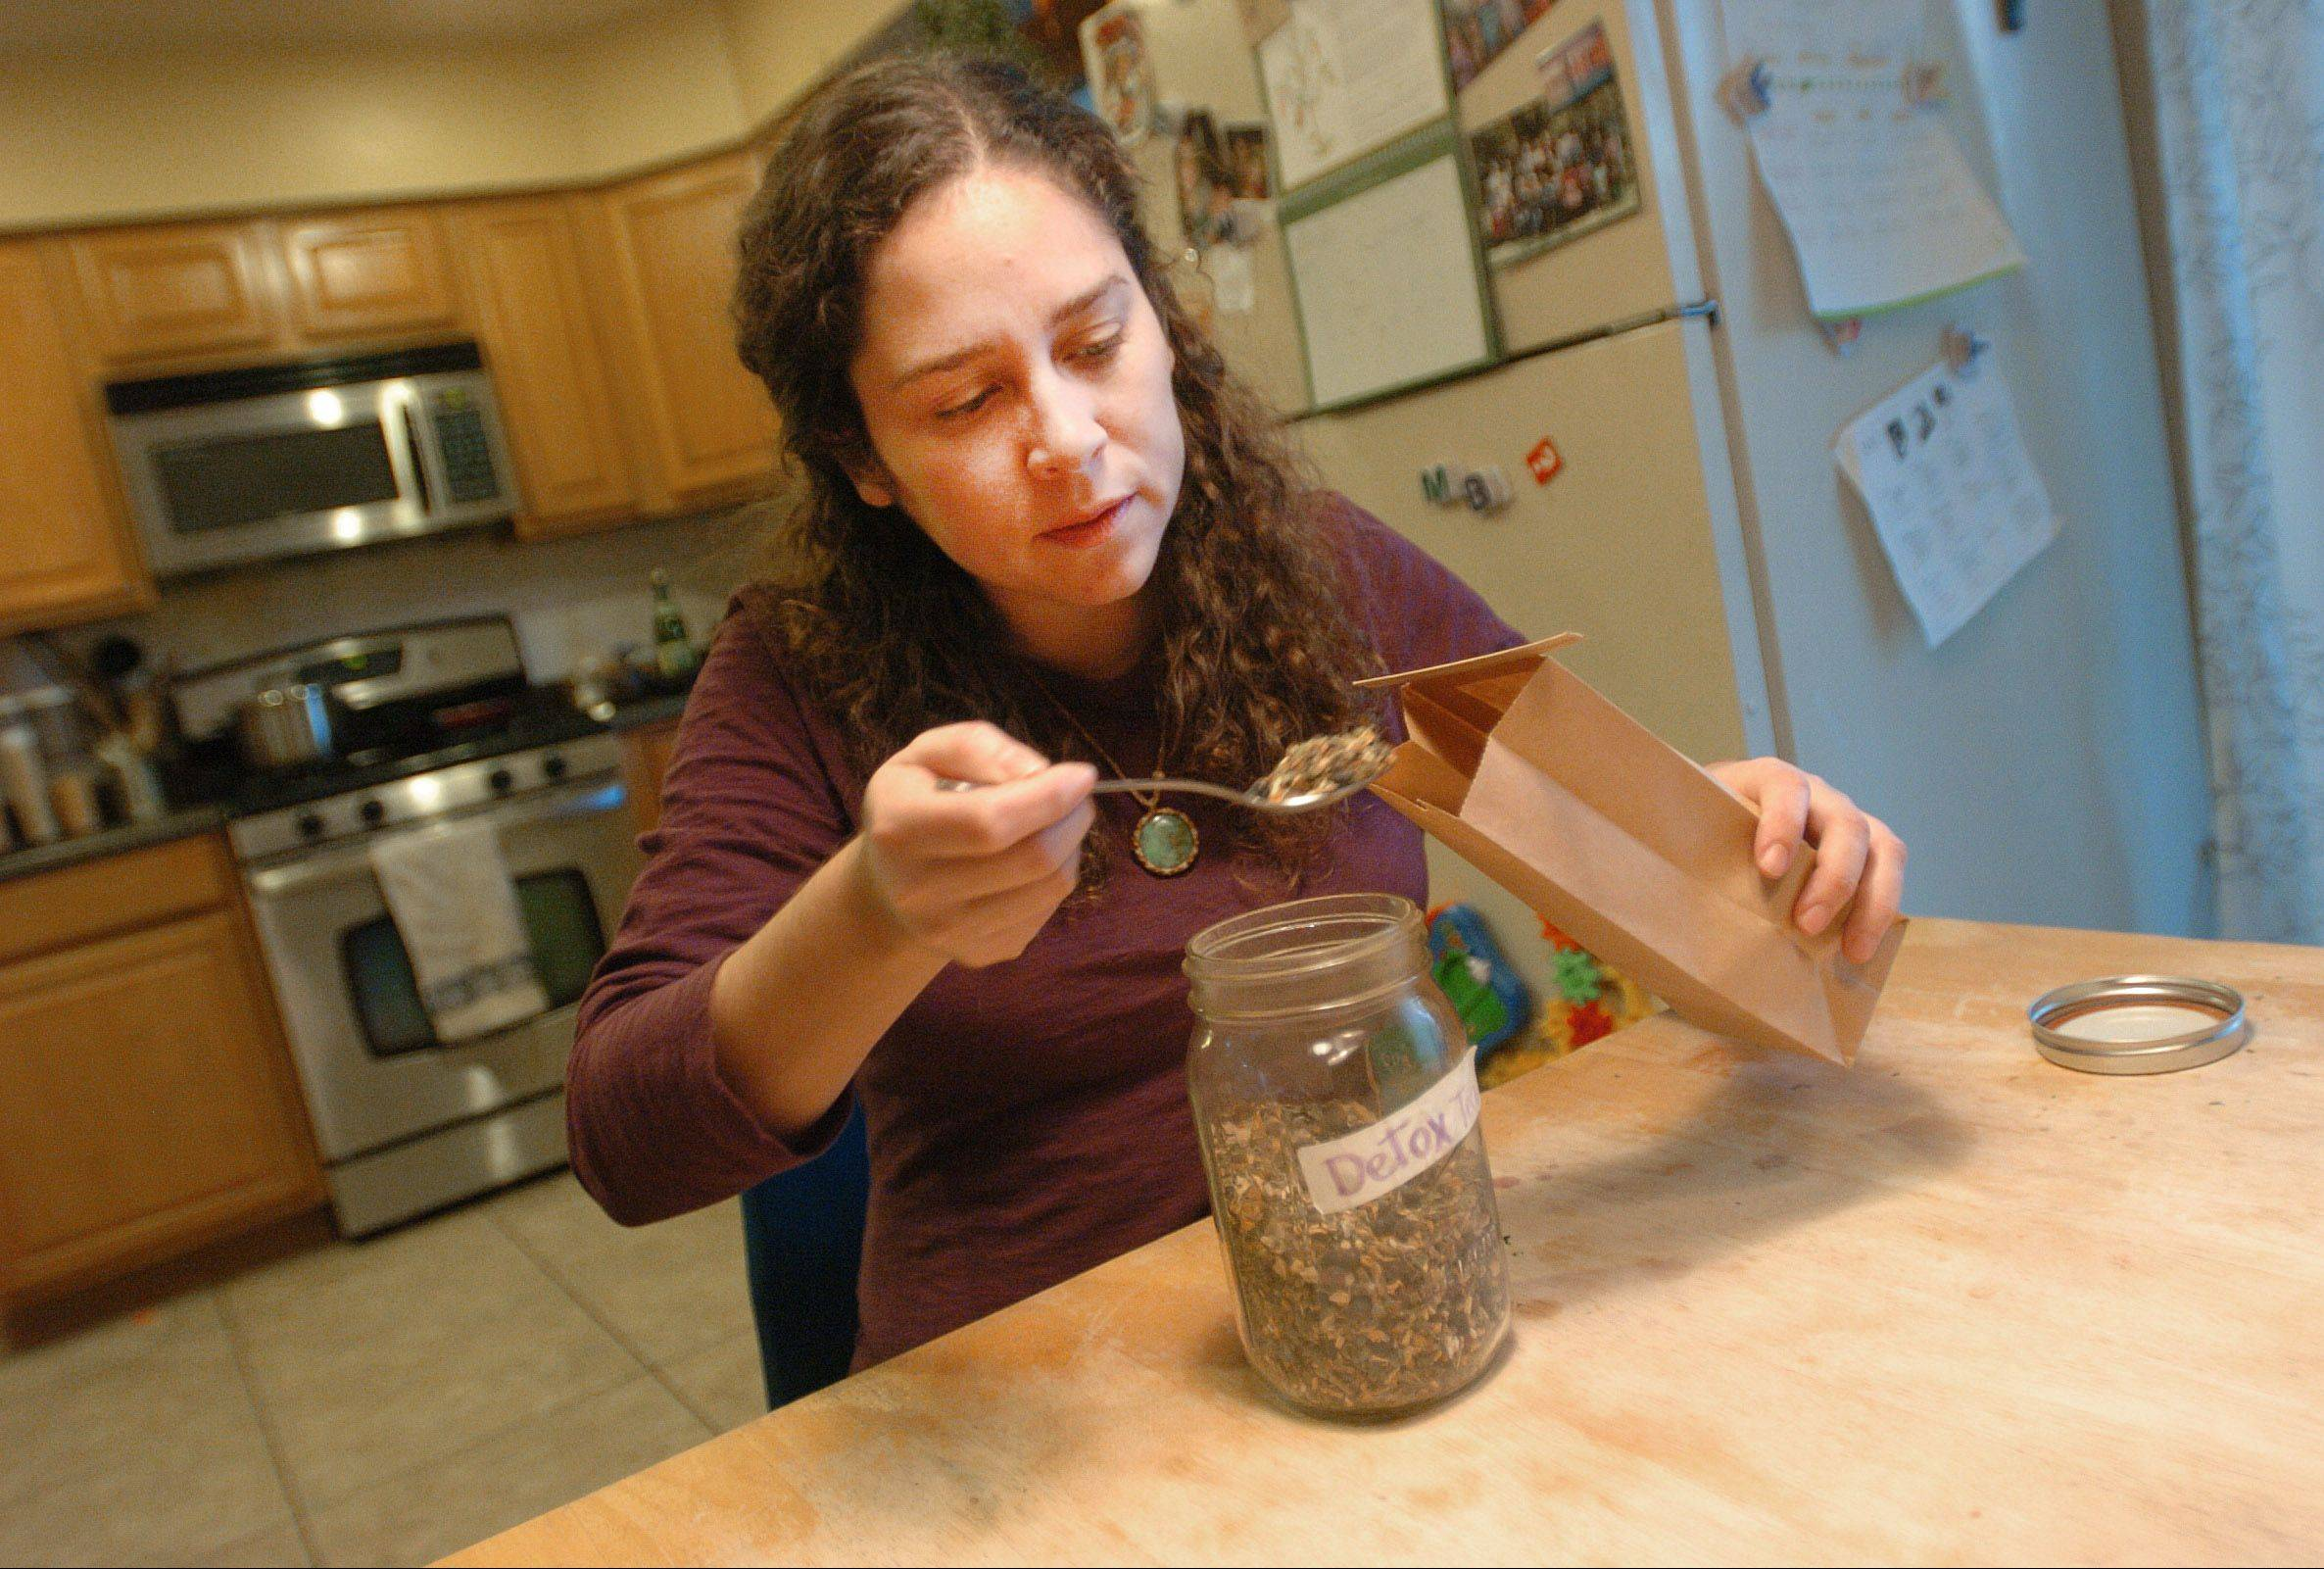 Cote Garceau-Saez of Aurora, owner of Our Healing Roots, packs a bag with a tea, which she says will be used to help the immune system fend off colds. For her home remedies, she collects most of what she needs from local fields and privately owned forested areas, but also gets some supplies from organic vendors.